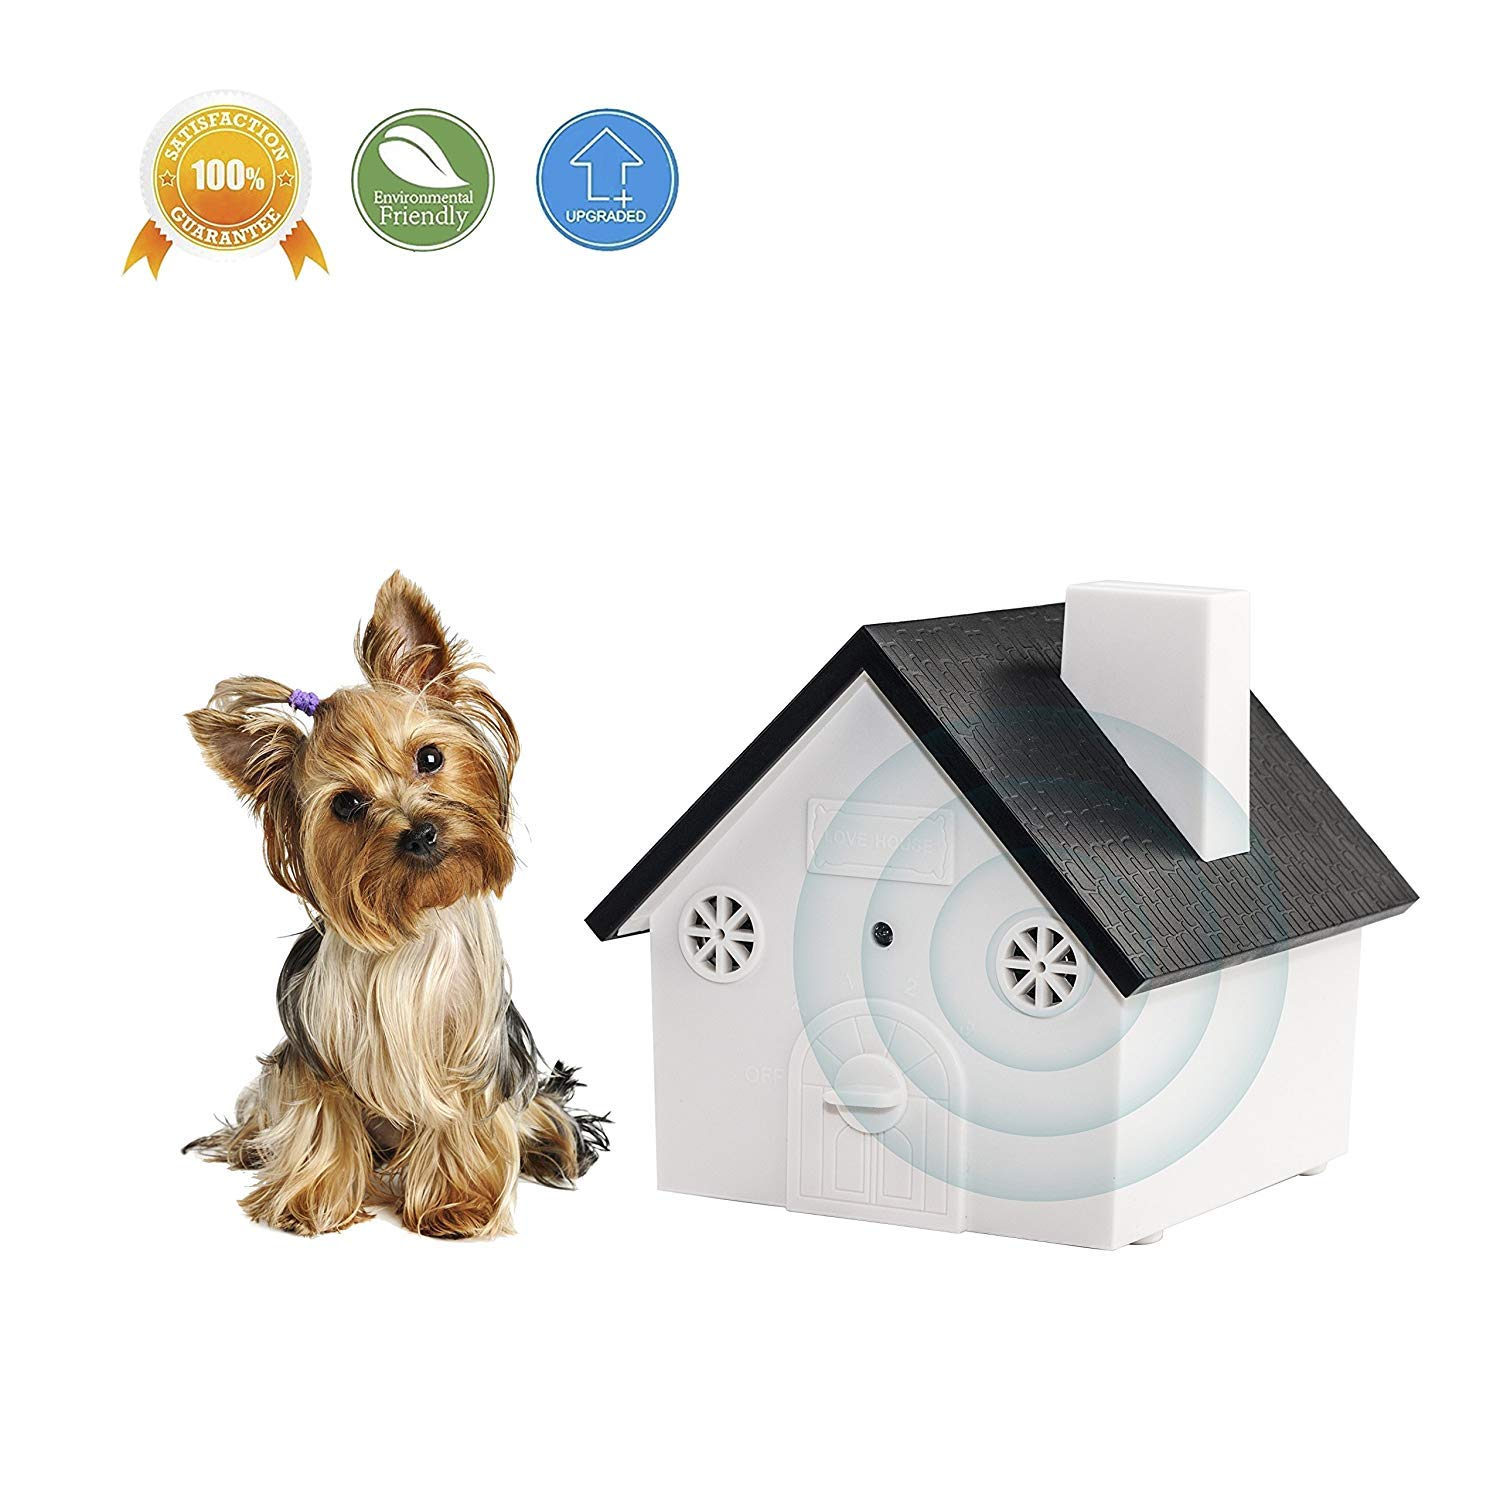 Outdoor Ultrasonic Stopper New Dog Driver Suitable for Dogs, Pets and Humans, up to 50 feet Range, Hanging or Mounted